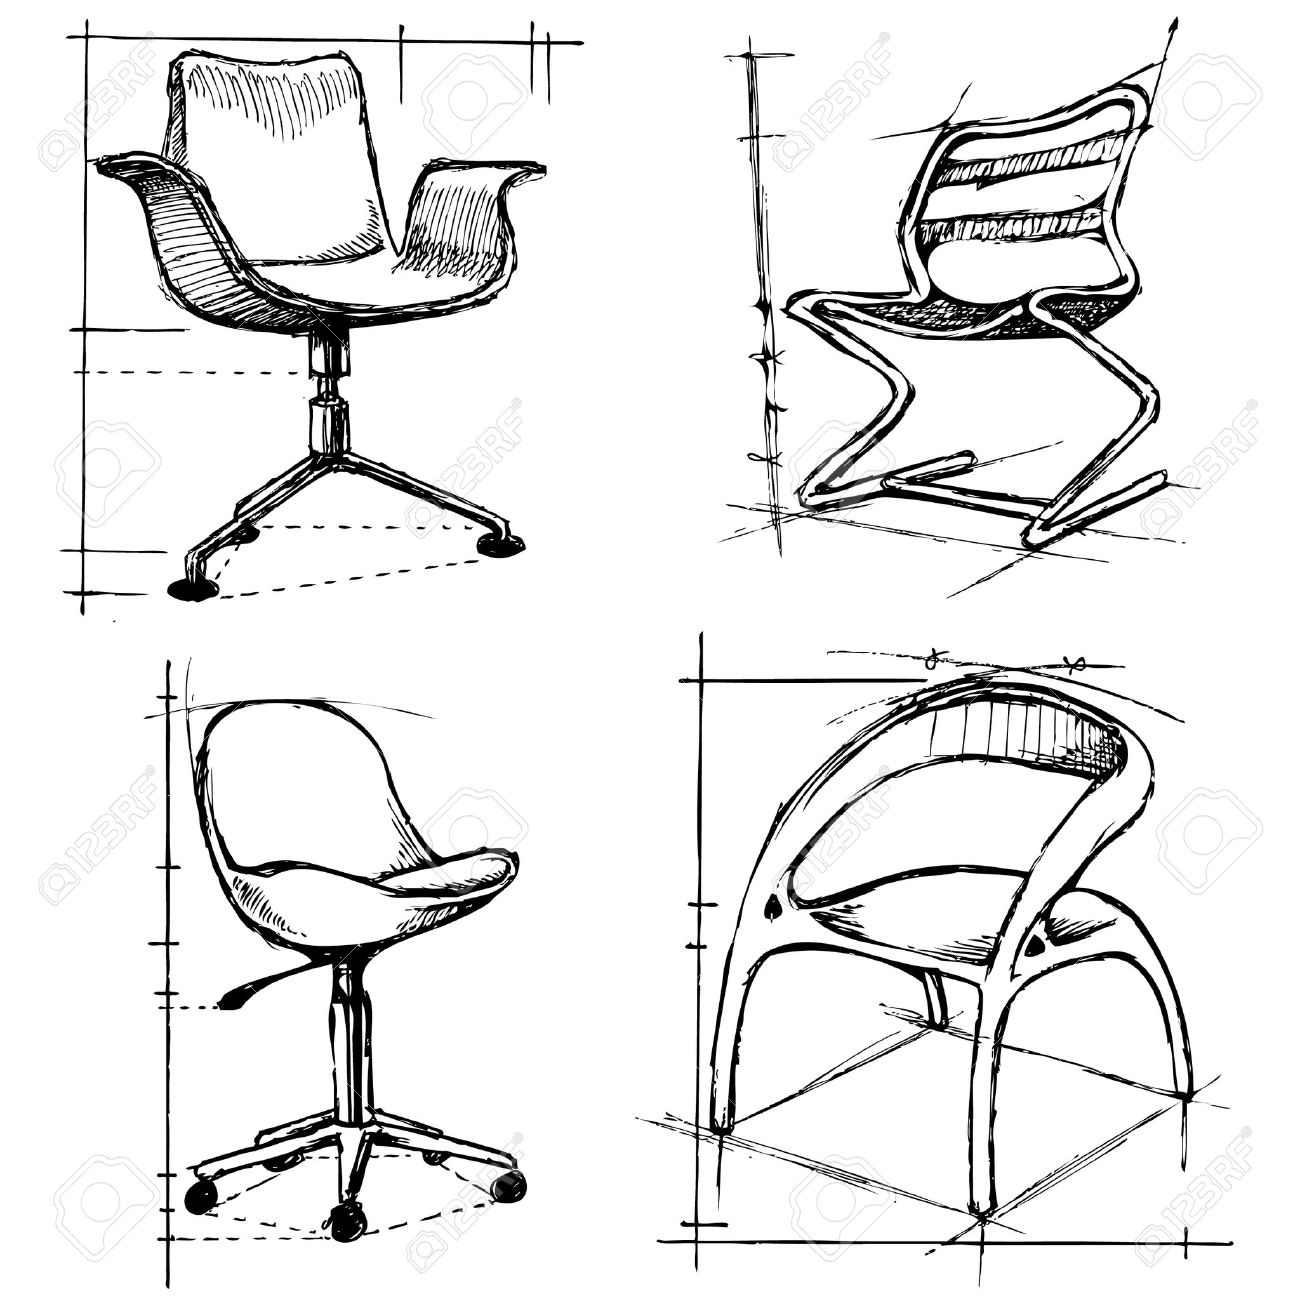 chairs drawings Stock Vector - 8967147  sc 1 st  123RF.com & Chairs Drawings Royalty Free Cliparts Vectors And Stock ...